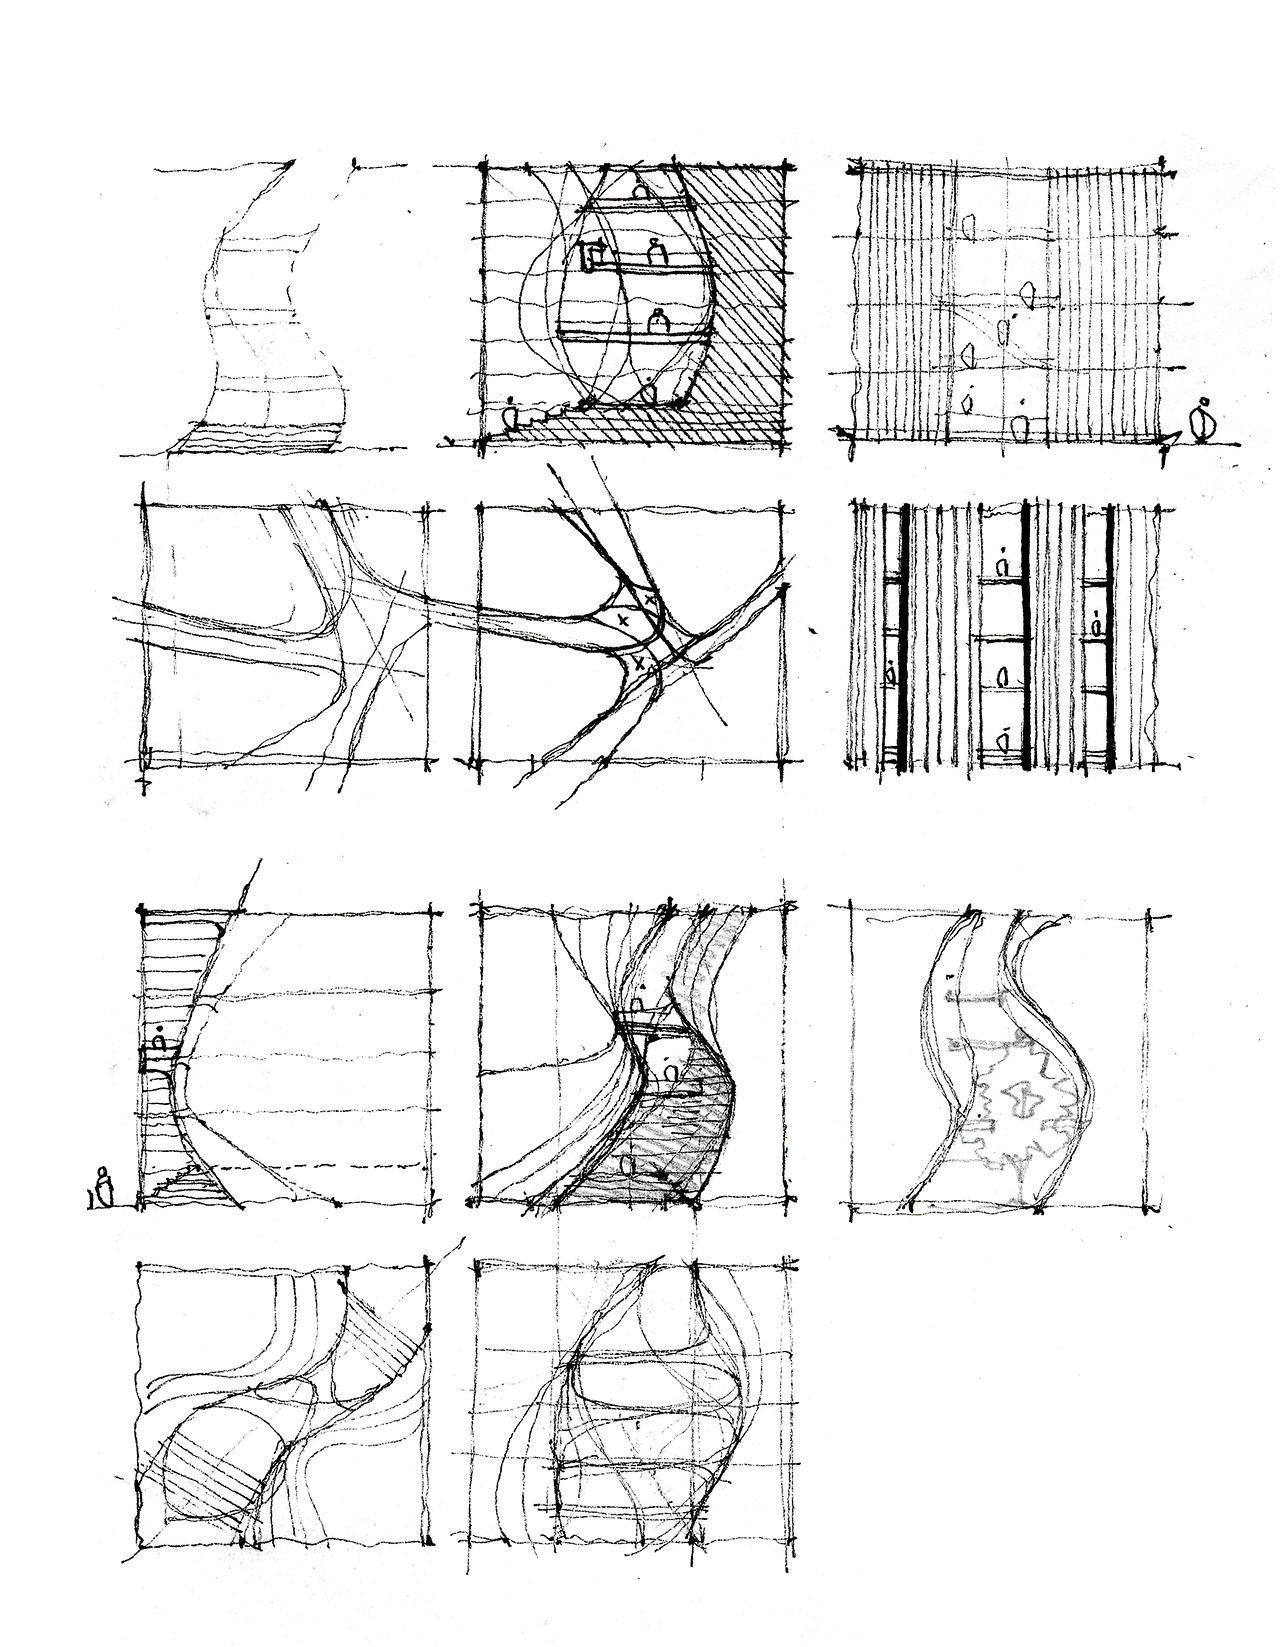 Free Tool To Draw Architecture Diagram Mk4 Golf Boot Wiring Concept Sketch Arch Of Ideas Sketches Conceptual